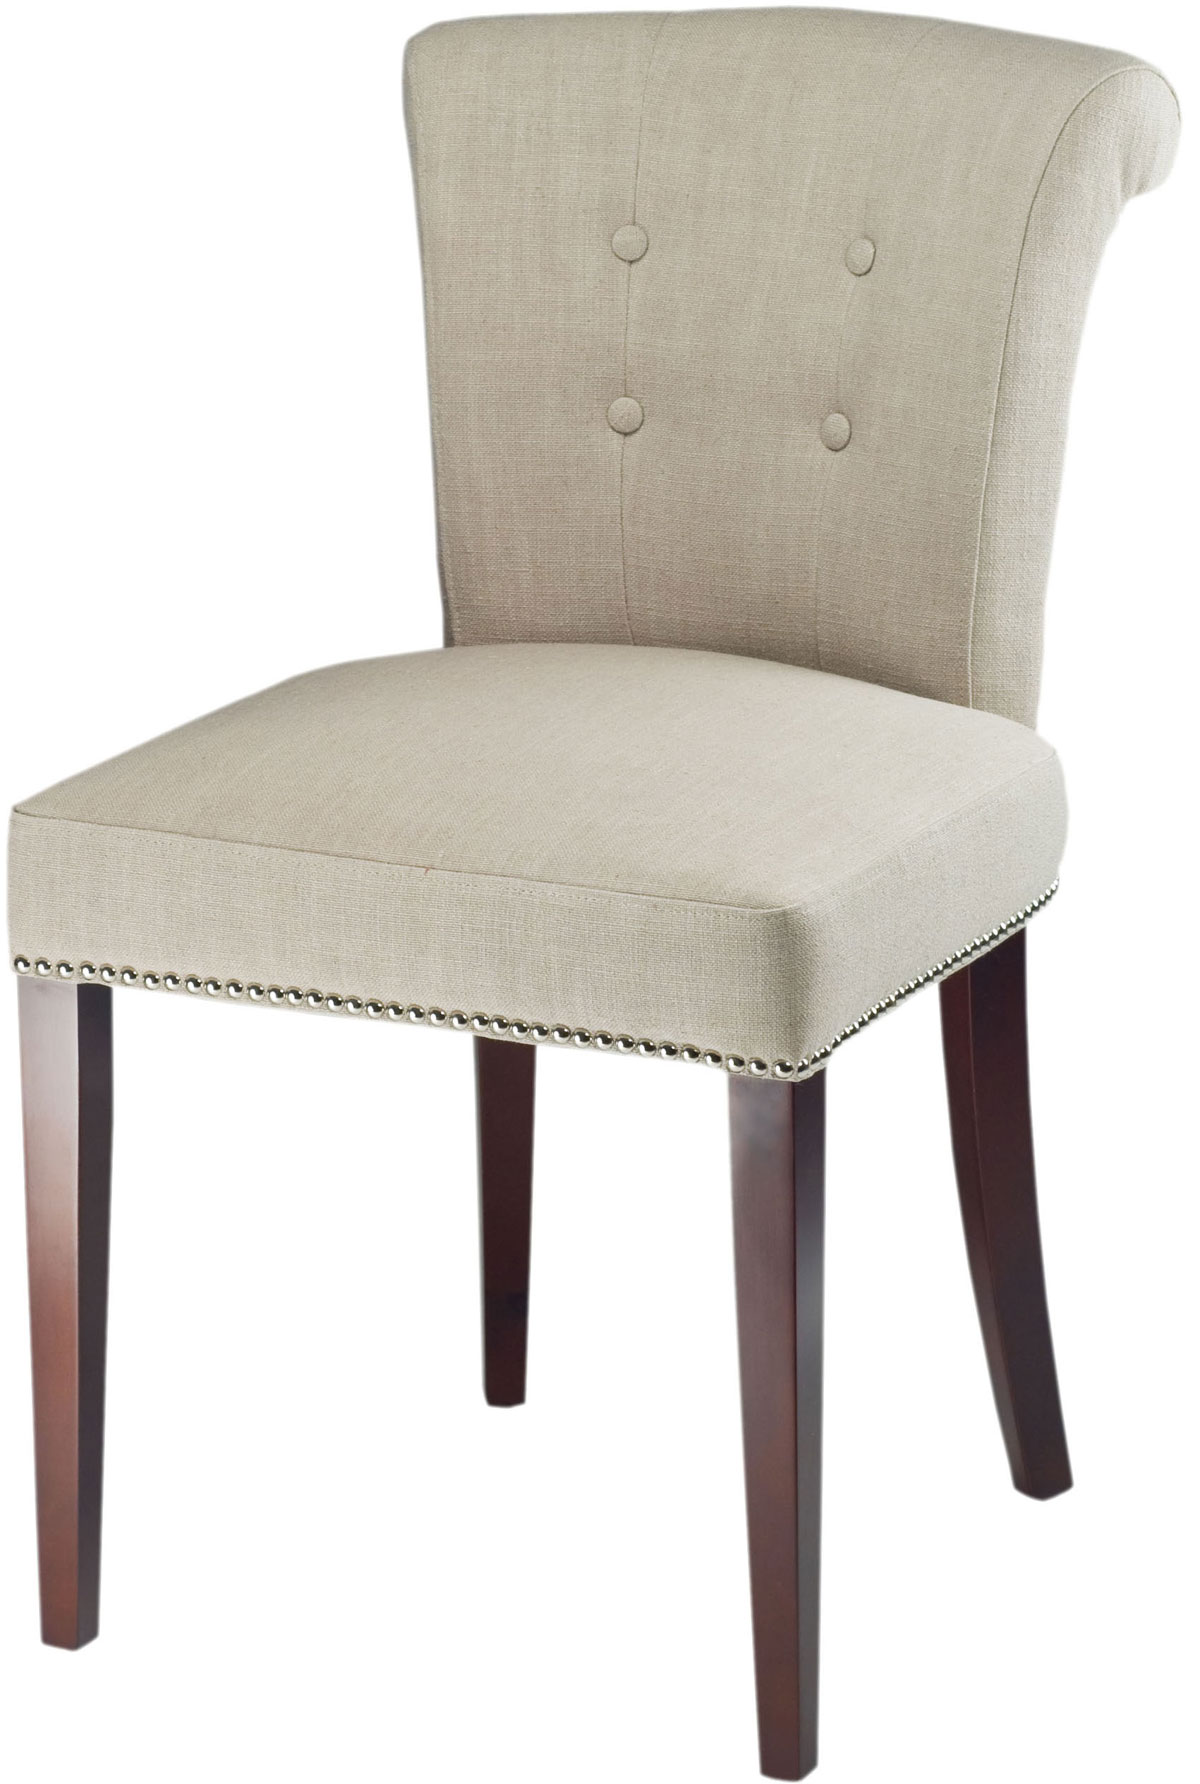 Incredible Mcr4507A Set2 Dining Chairs Furniture By Safavieh Beatyapartments Chair Design Images Beatyapartmentscom